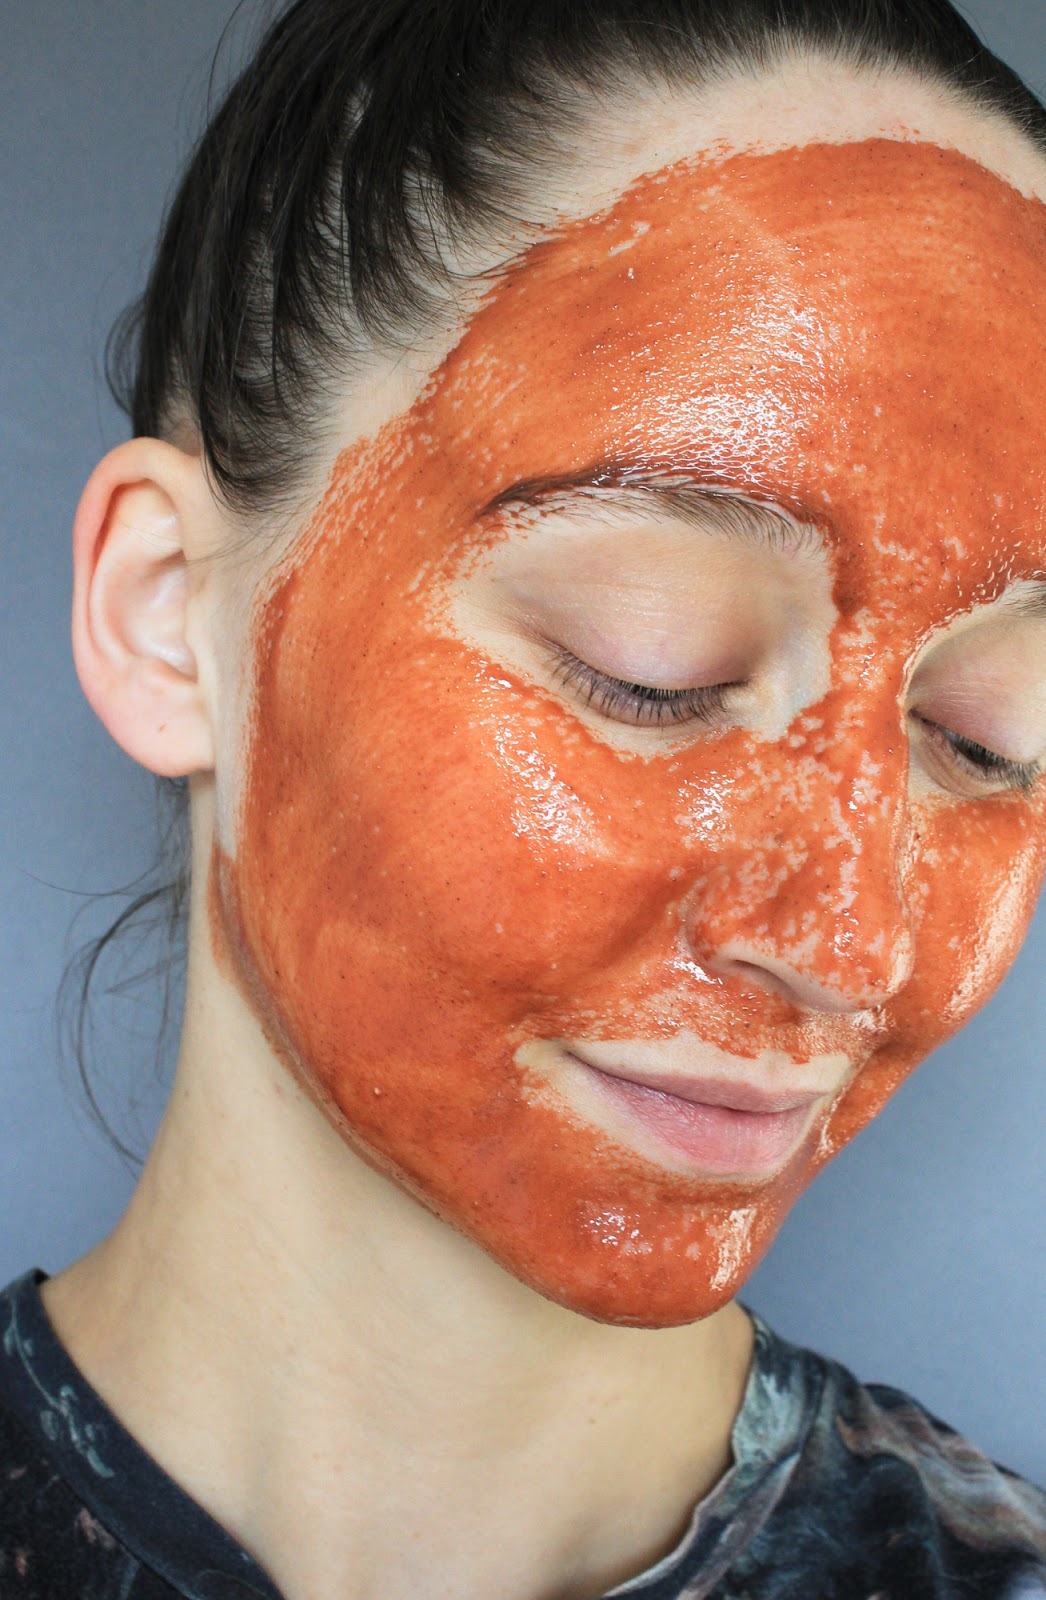 LILFOX Cleopatra Restorative Milk + Honey Beauty Mask. February Clean Beauty Box. Masking selfie